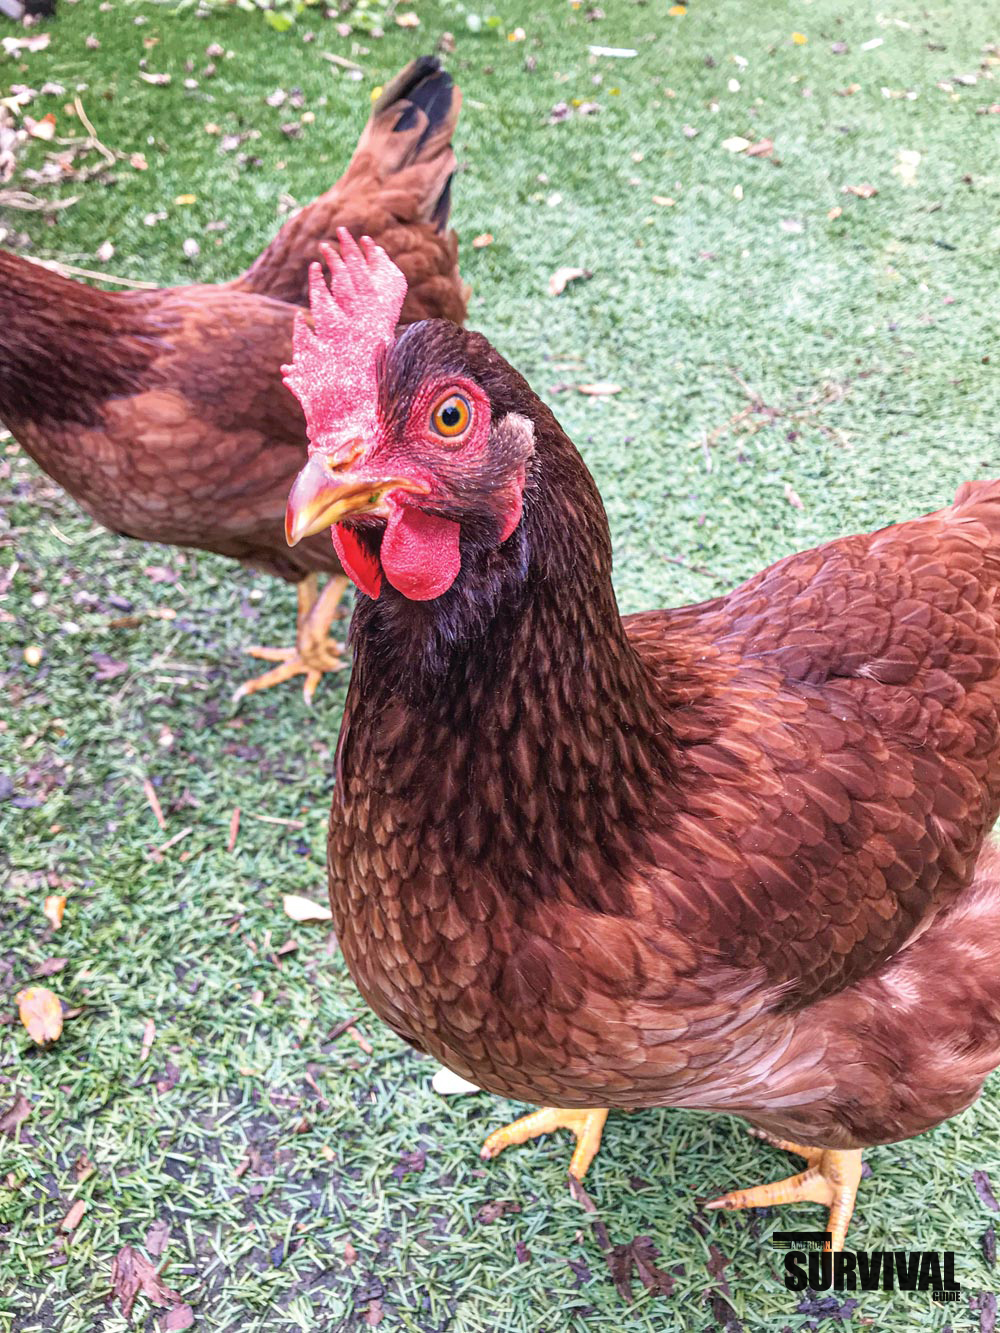 The Rhode Island Red is an excellent dualpurpose breed